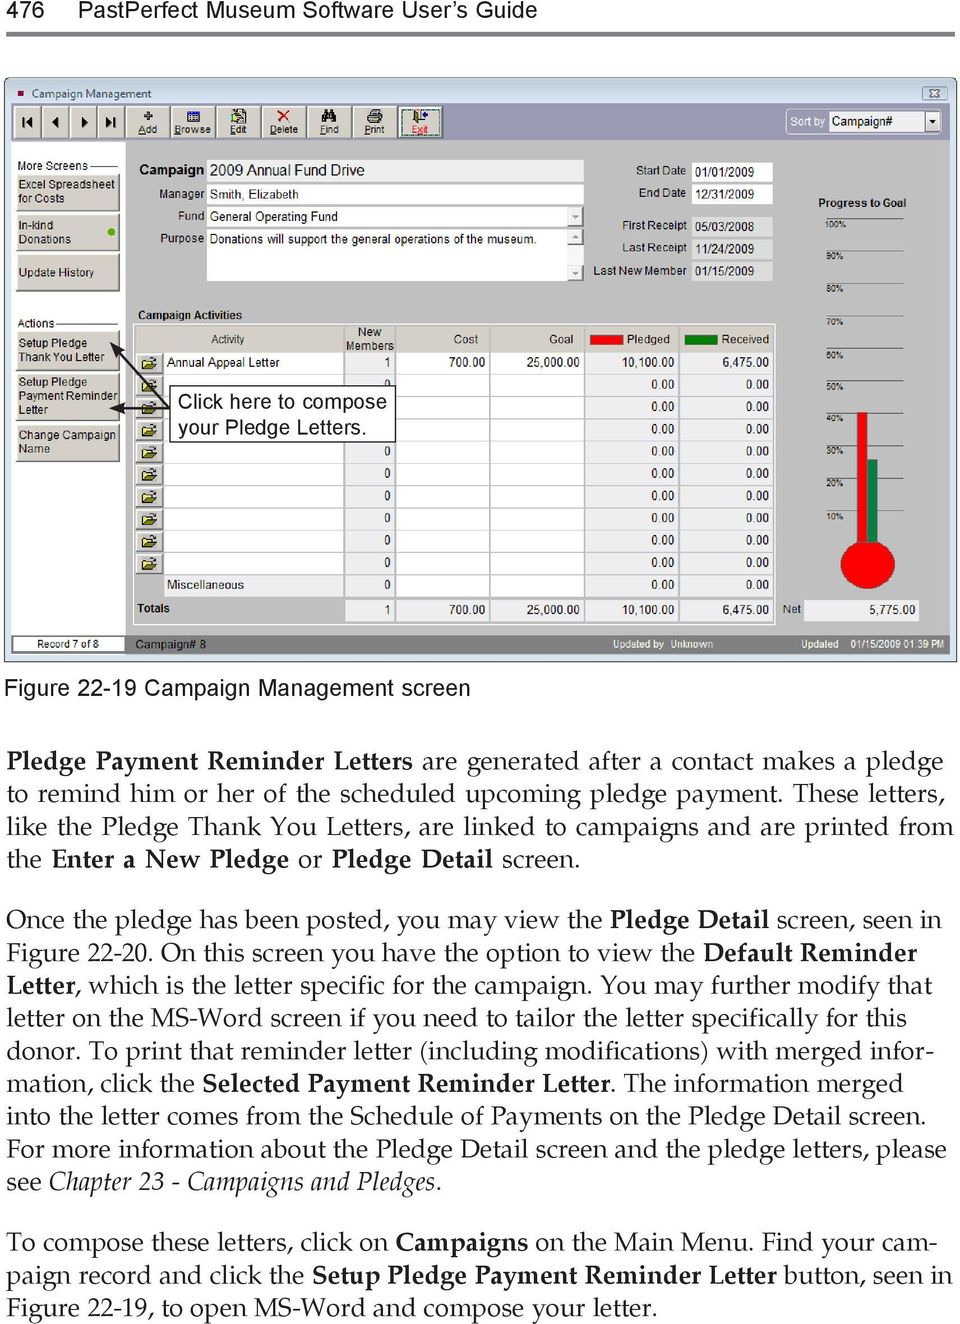 These letters, like the Pledge Thank You Letters, are linked to campaigns and are printed from the Enter a New Pledge or Pledge Detail screen.